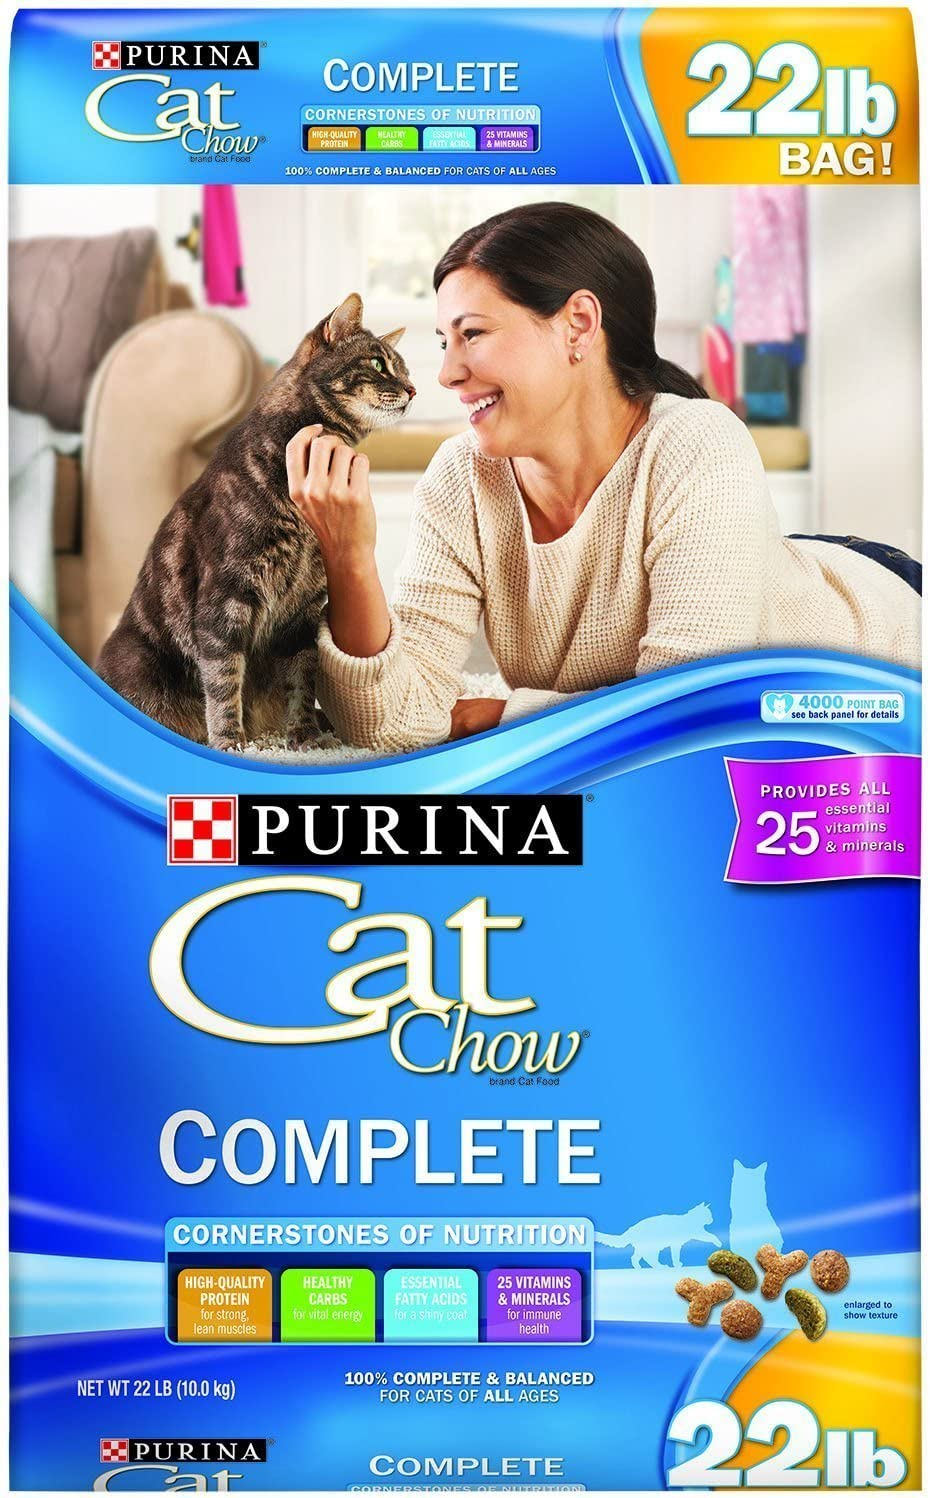 Purina Cat Chow Complete Dry Cat Food (22 lb. Bag - Pack of 2)